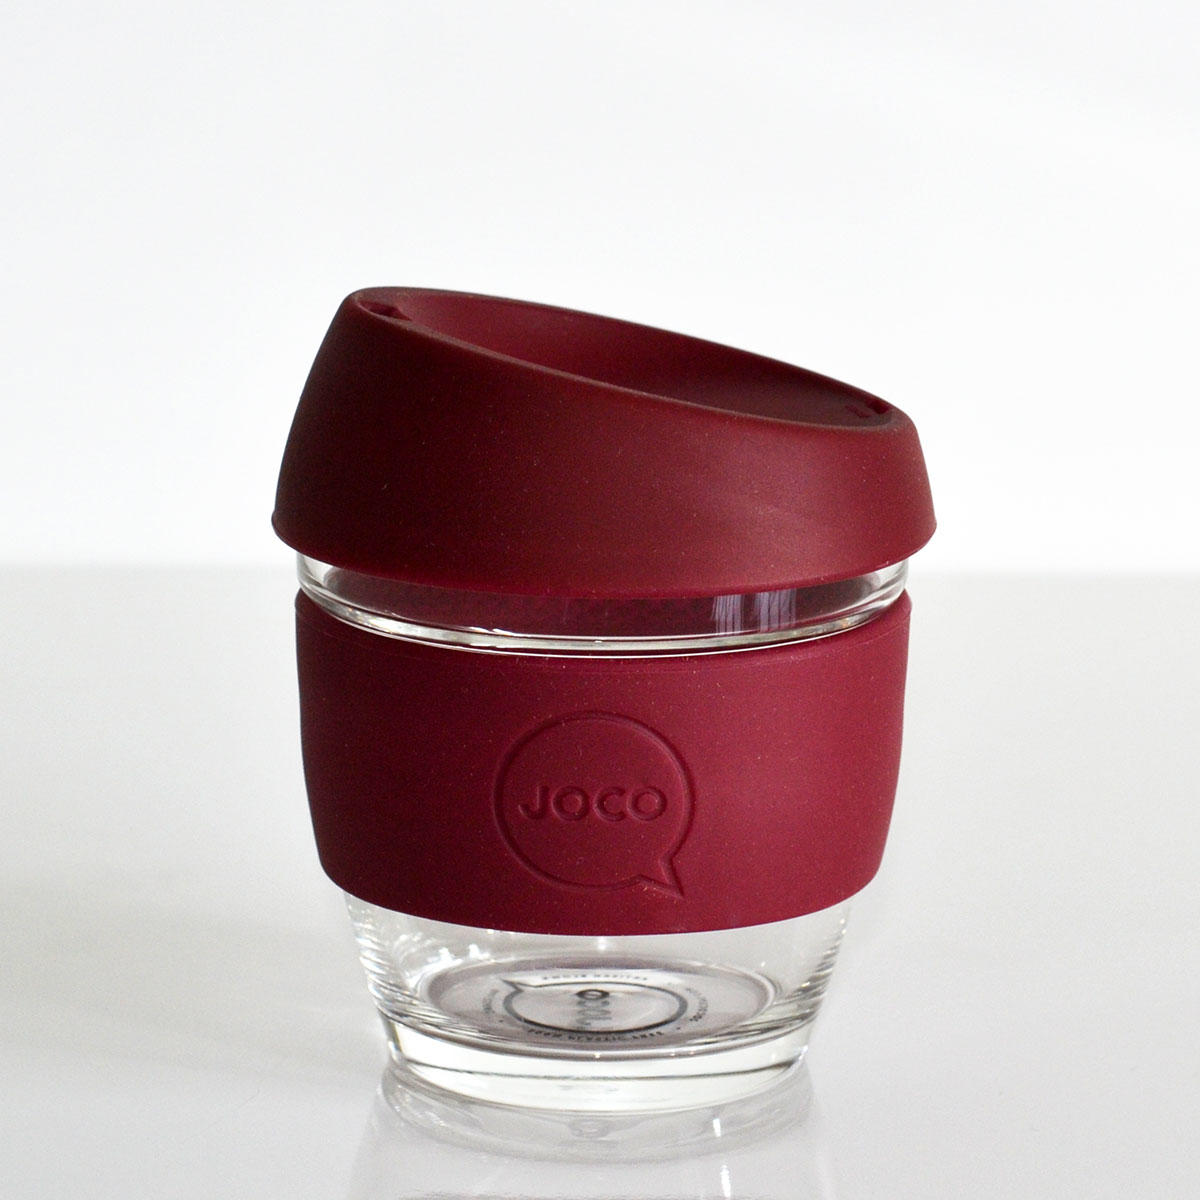 JOCO Cup 8oz Ruby Wine